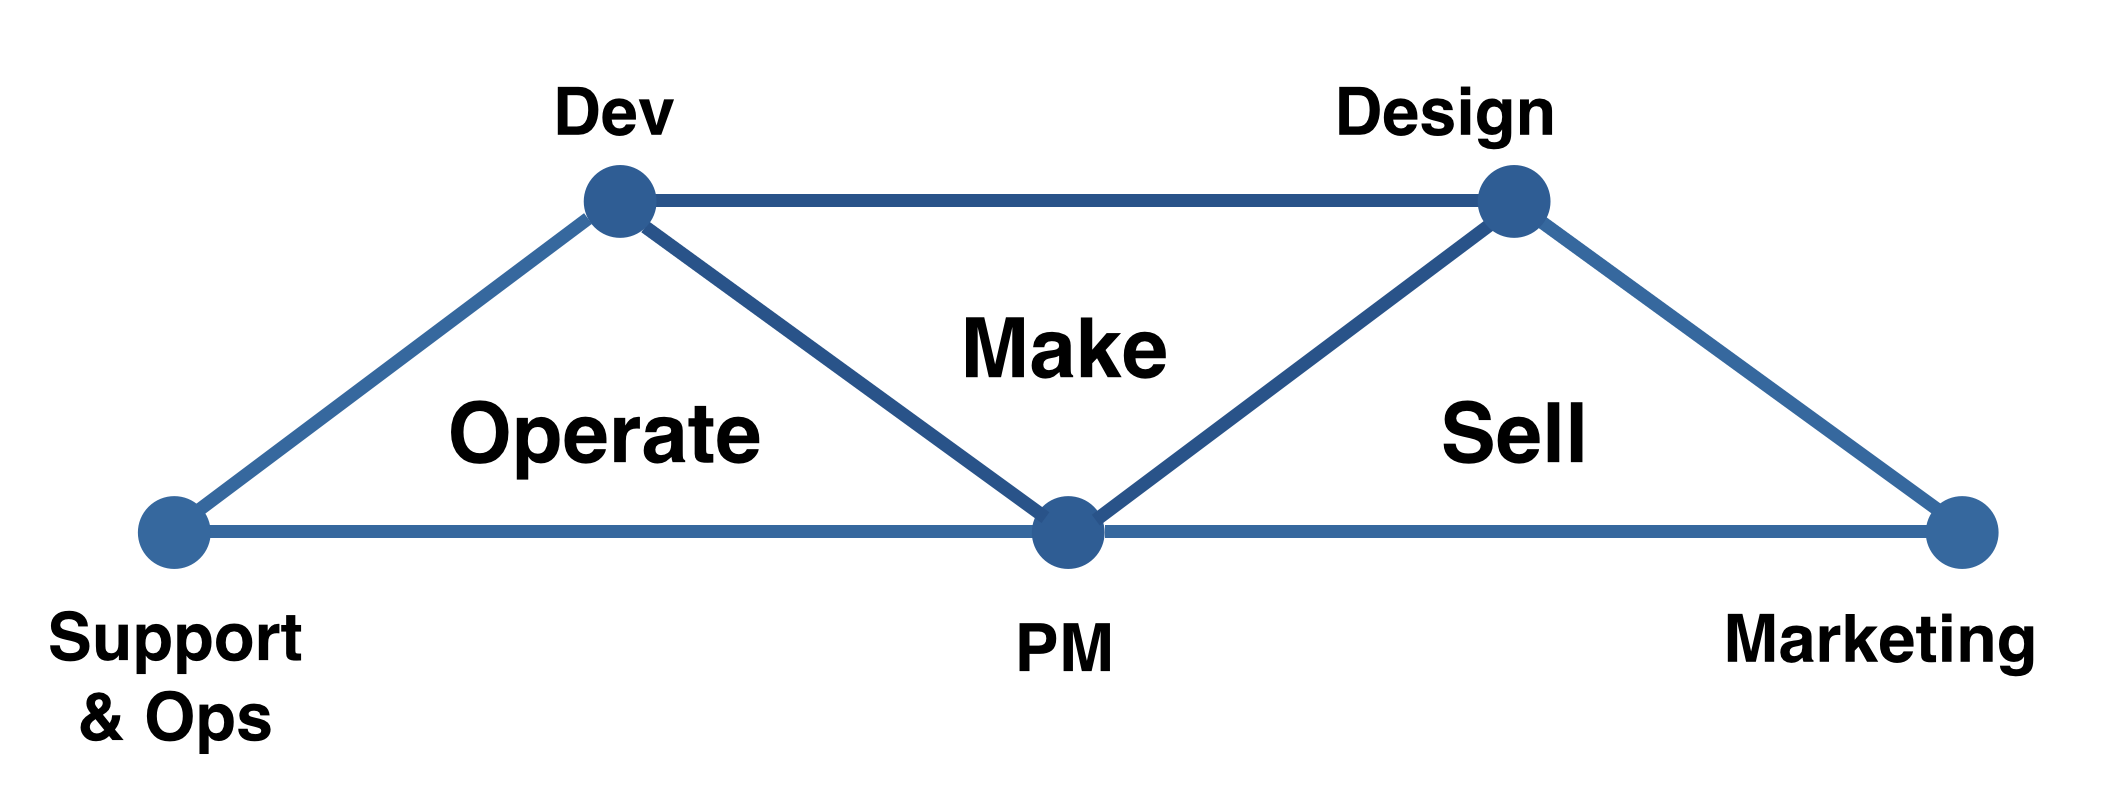 how to build a kick ass agile team the agile coach each triad is agile in its approach because as the product develops teams are continuously working